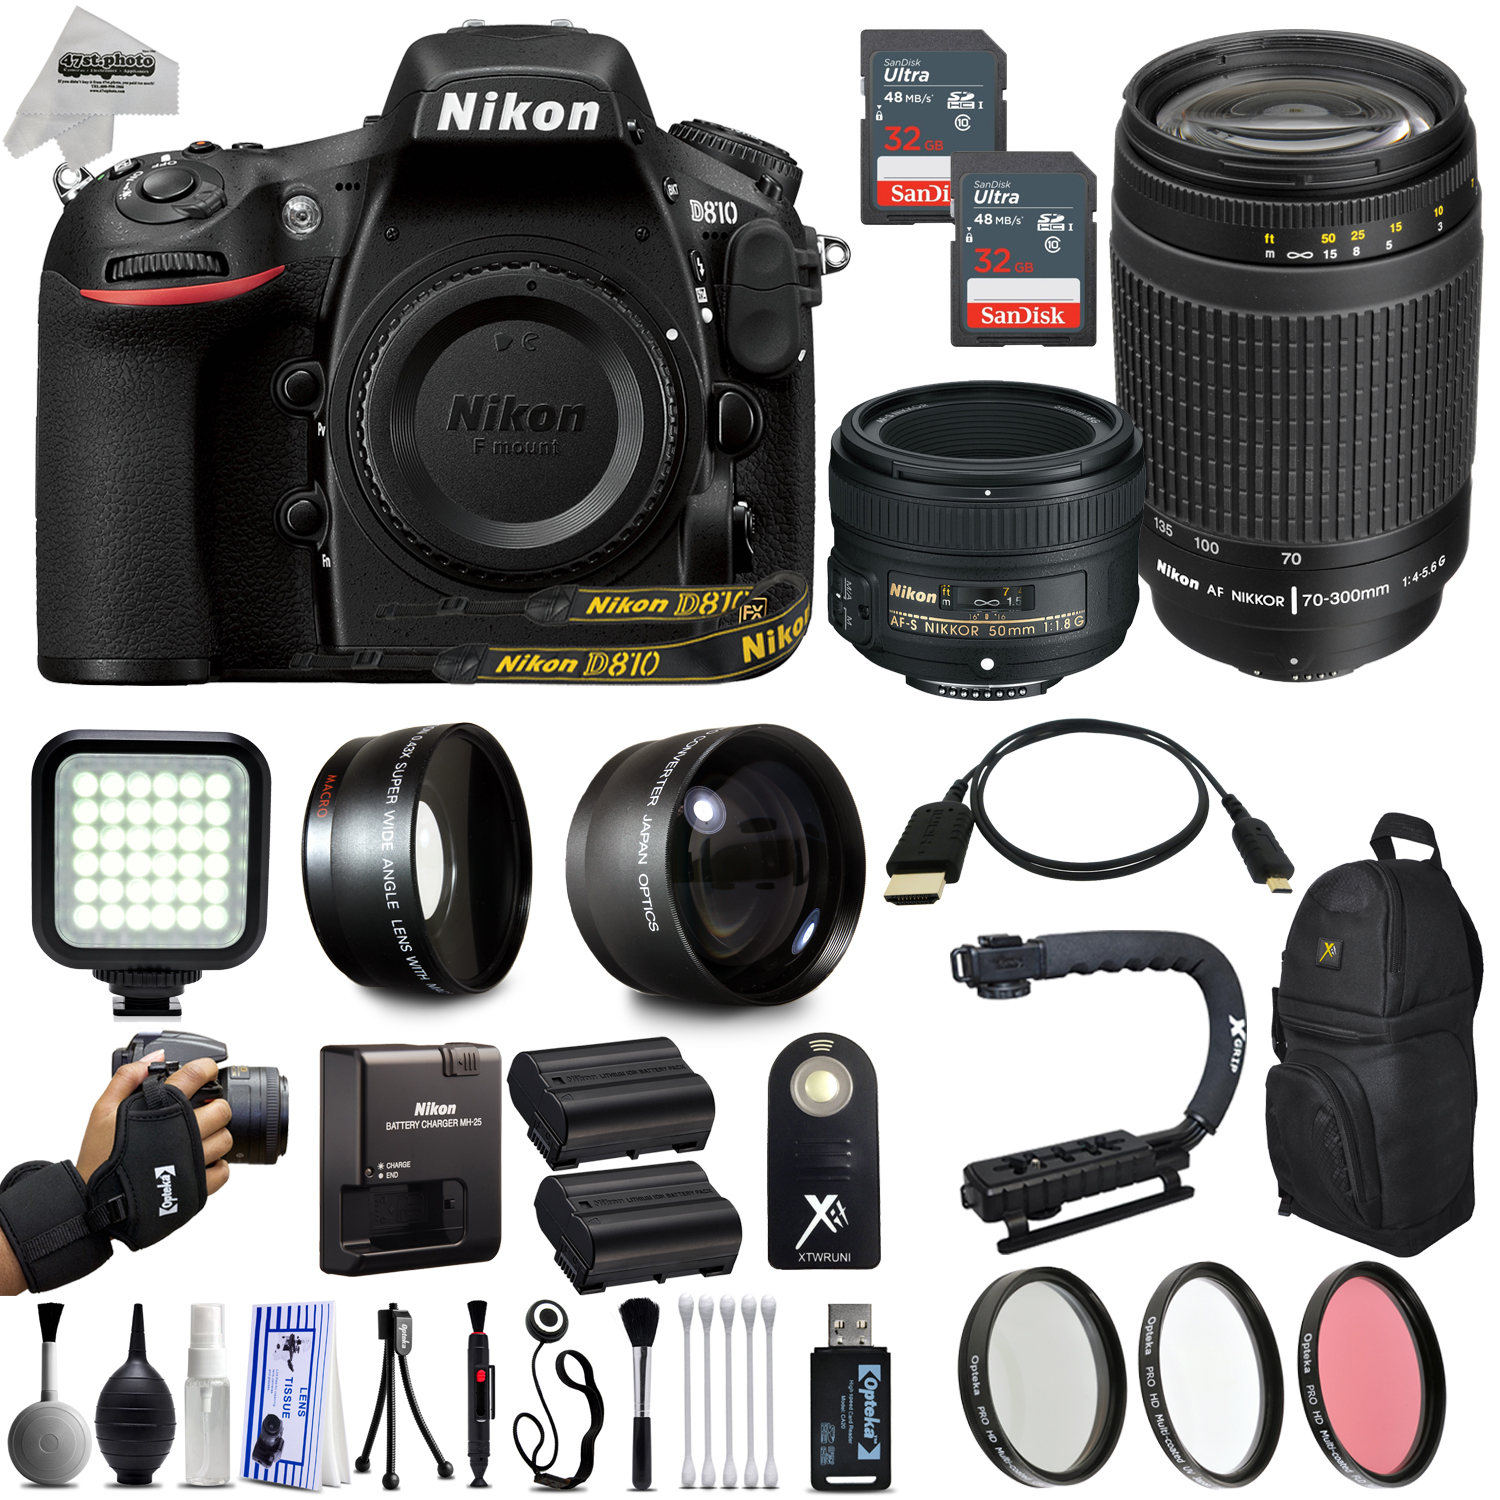 "Nikon D810 36.3MP 1080P DSLR Camera w/ Nikon 50mm f/1.8D + Nikon 70-300mm f/4-5.6G 4 Lens Kit + WiFi & GPS Ready + Built in Flash + 3.2"" LCD + 128GB SD 24 Piece Package"